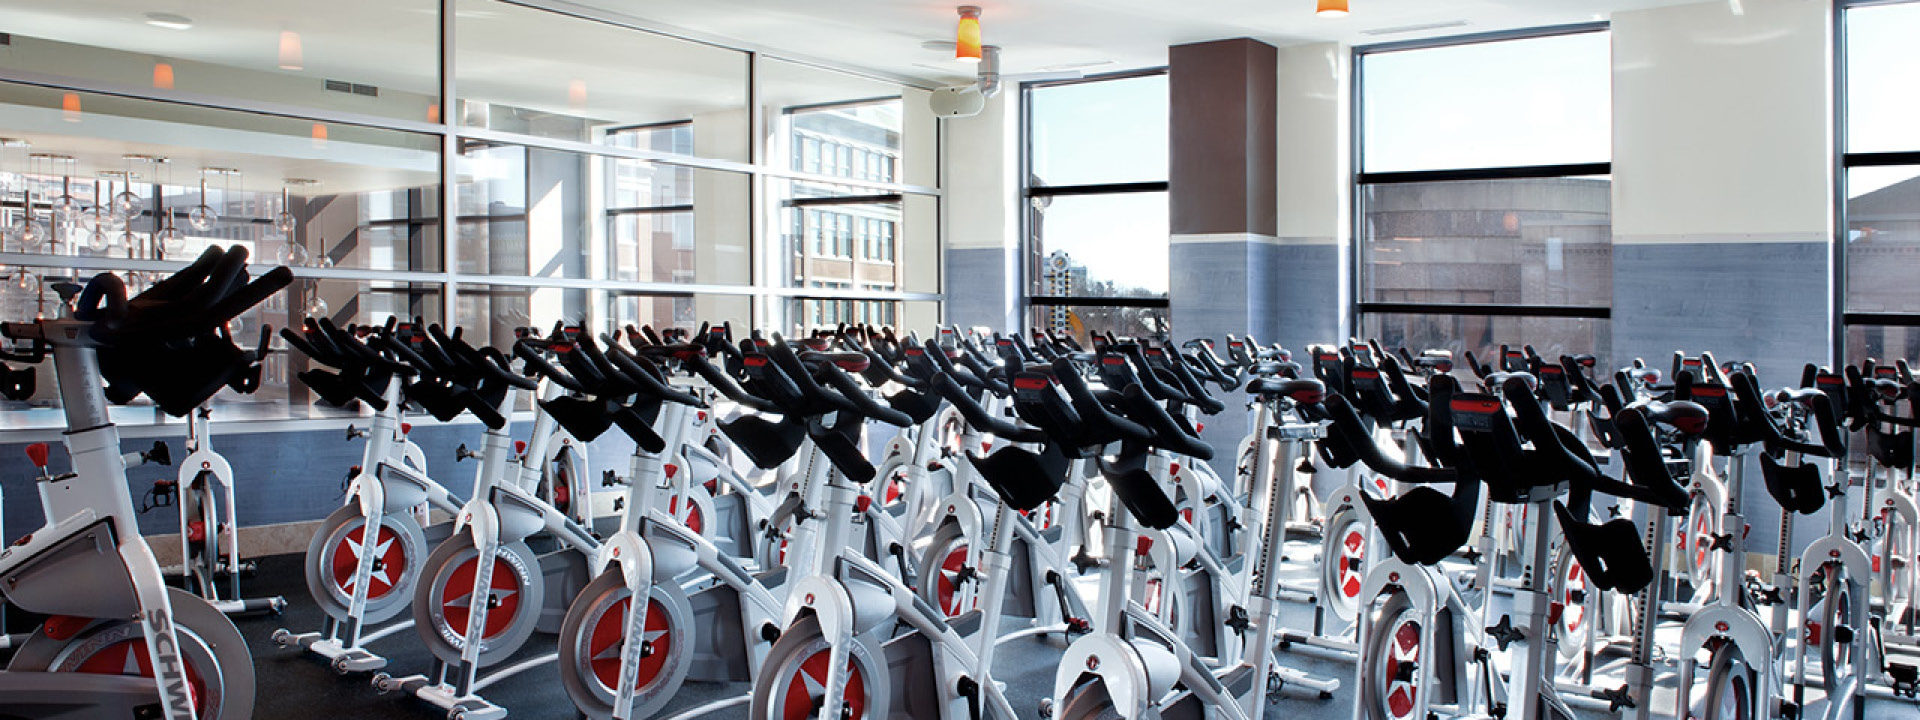 Gyms in bethesda md with luxury fitness amenities at equinox